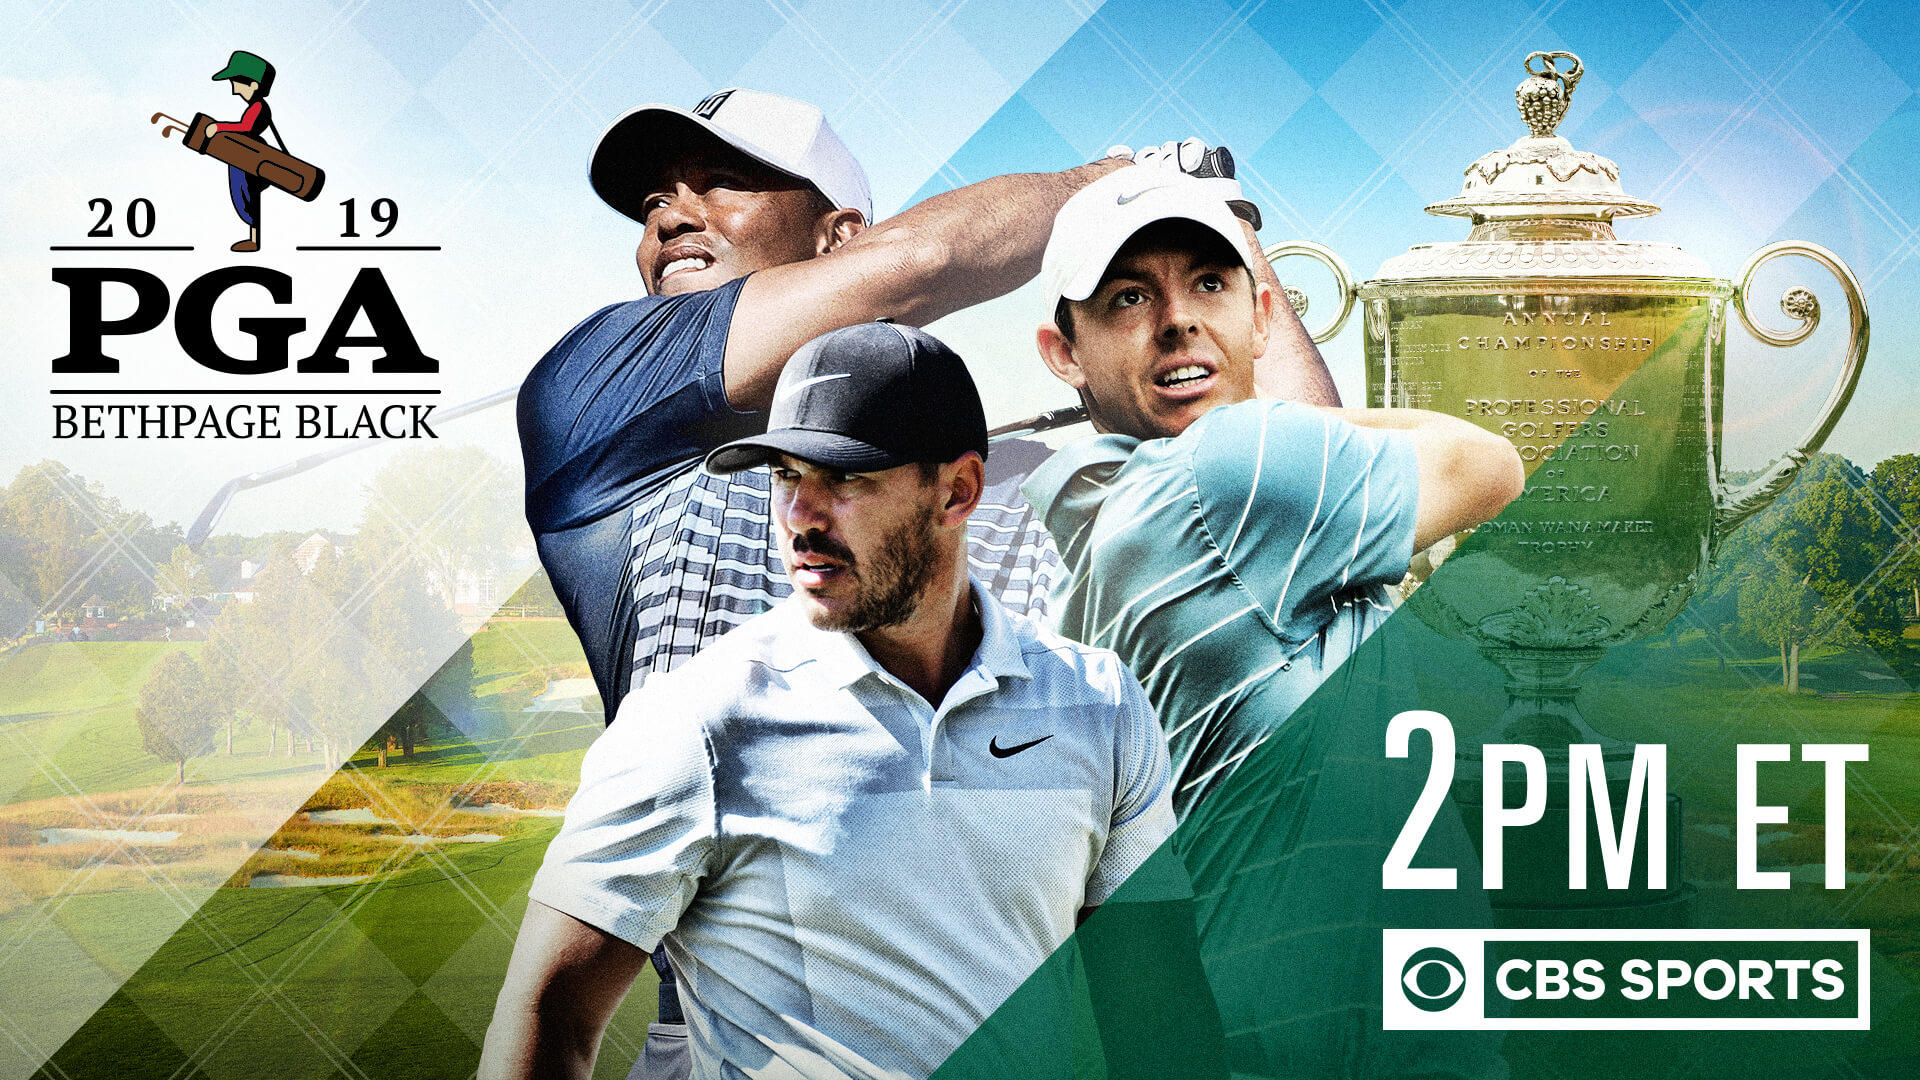 pgachamp-1920x1080-watch-dropdown